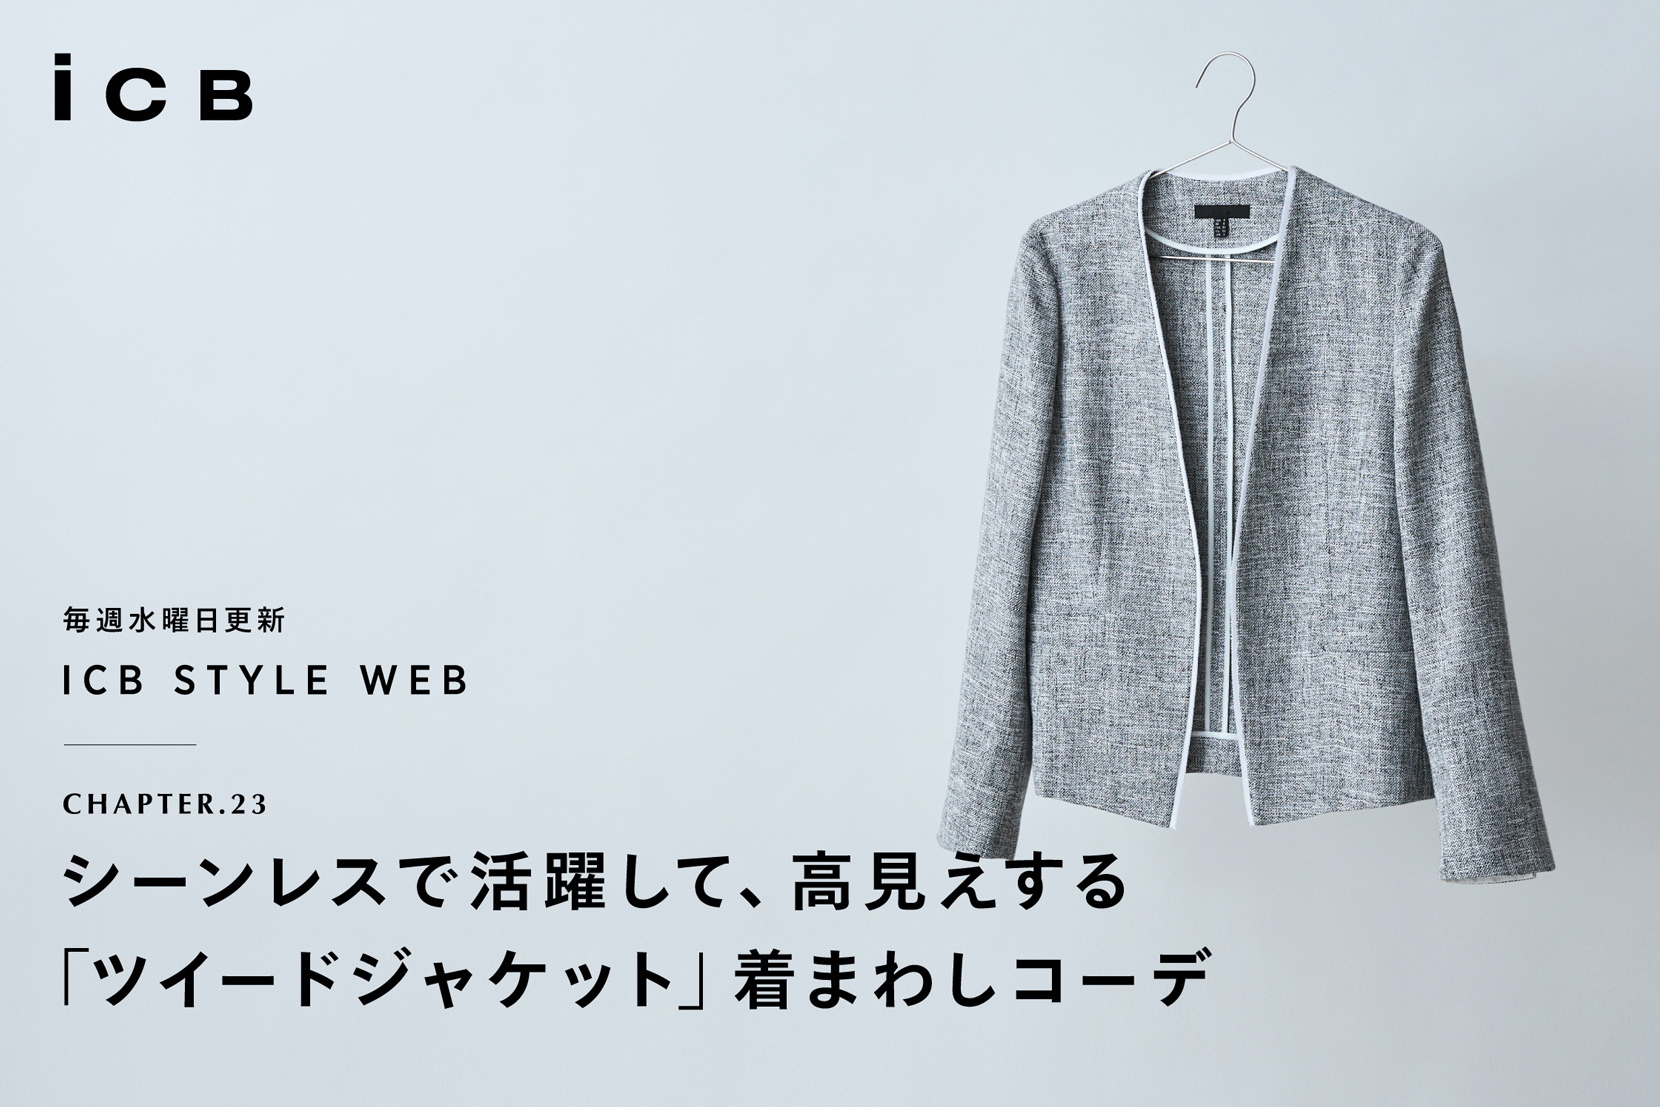 ICB STYLE WEB chapter.23「シーンレスで活躍して、高見えする